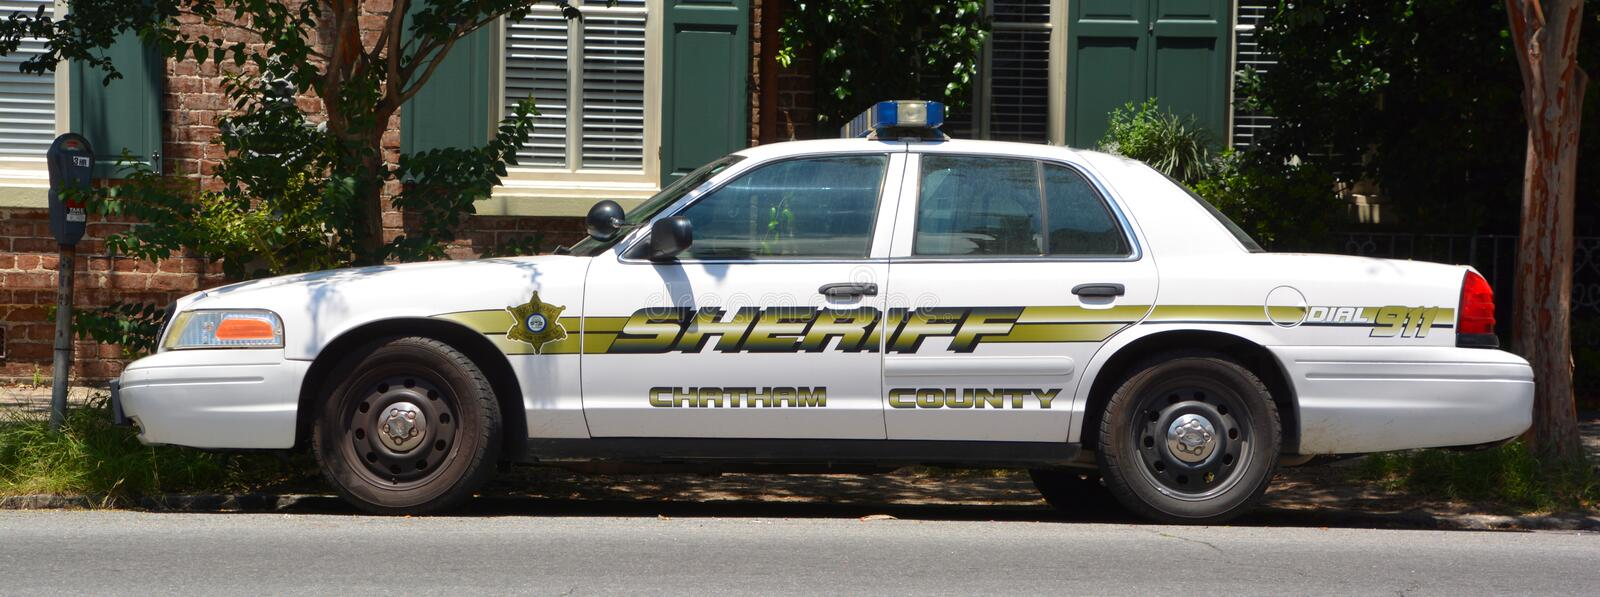 Chatham County Sheriff police car, stock photos